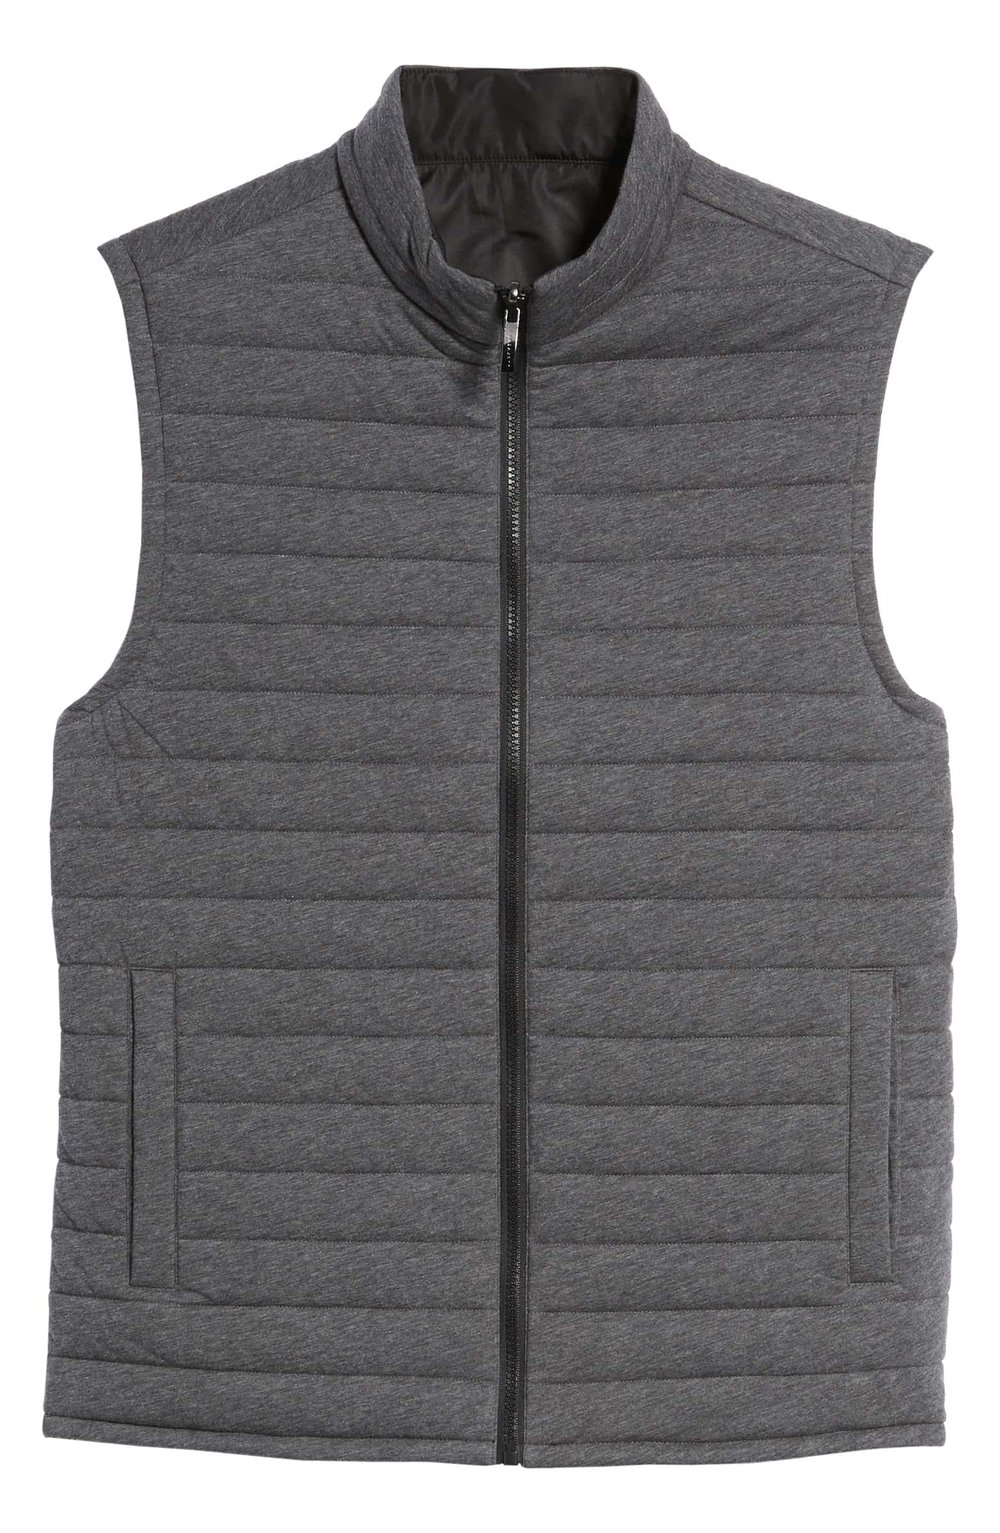 Gallagher Reversible Vest - A similar look with better quality and a reversible option for when it rains.